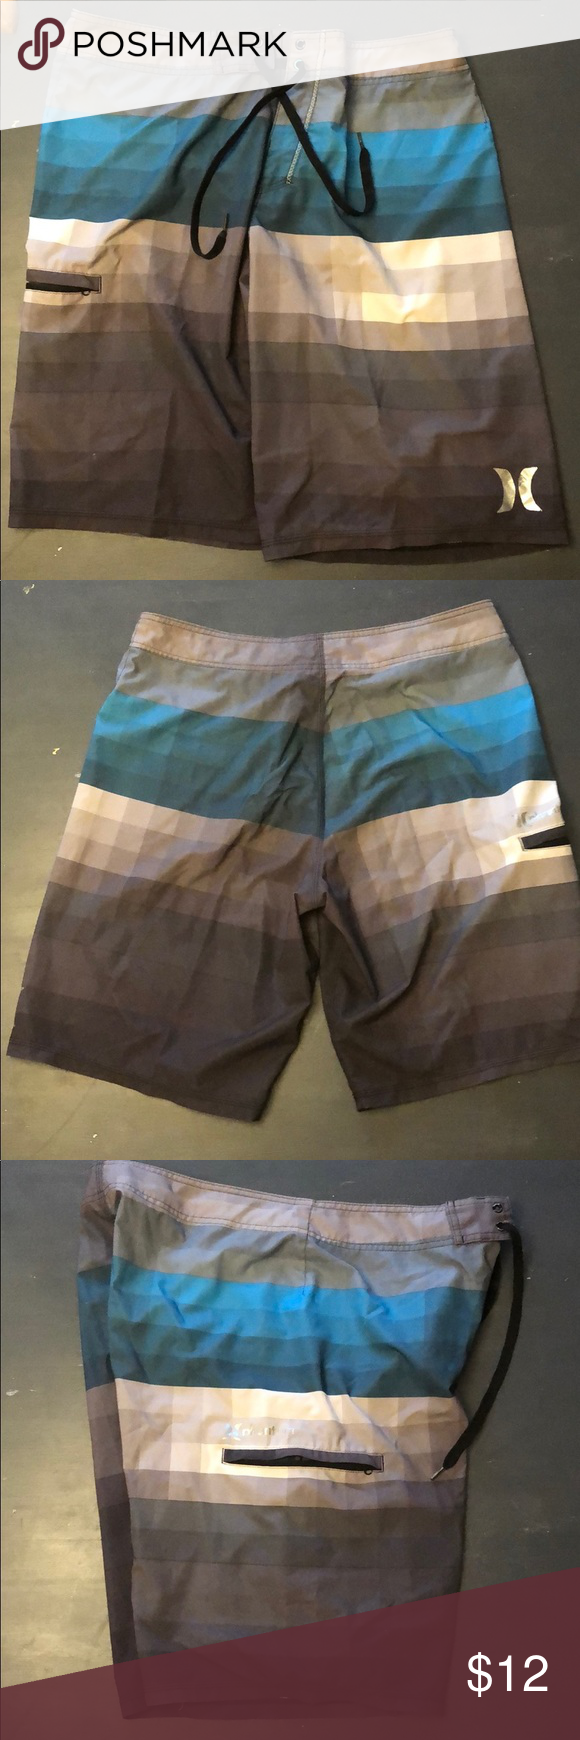 de235d1a2768a Hurley phantom board shorts Men's board shorts by Hurley. Hurley Phantom.  Size 33. Stretch material. Used but in good condition. Hurley Swim Board  Shorts